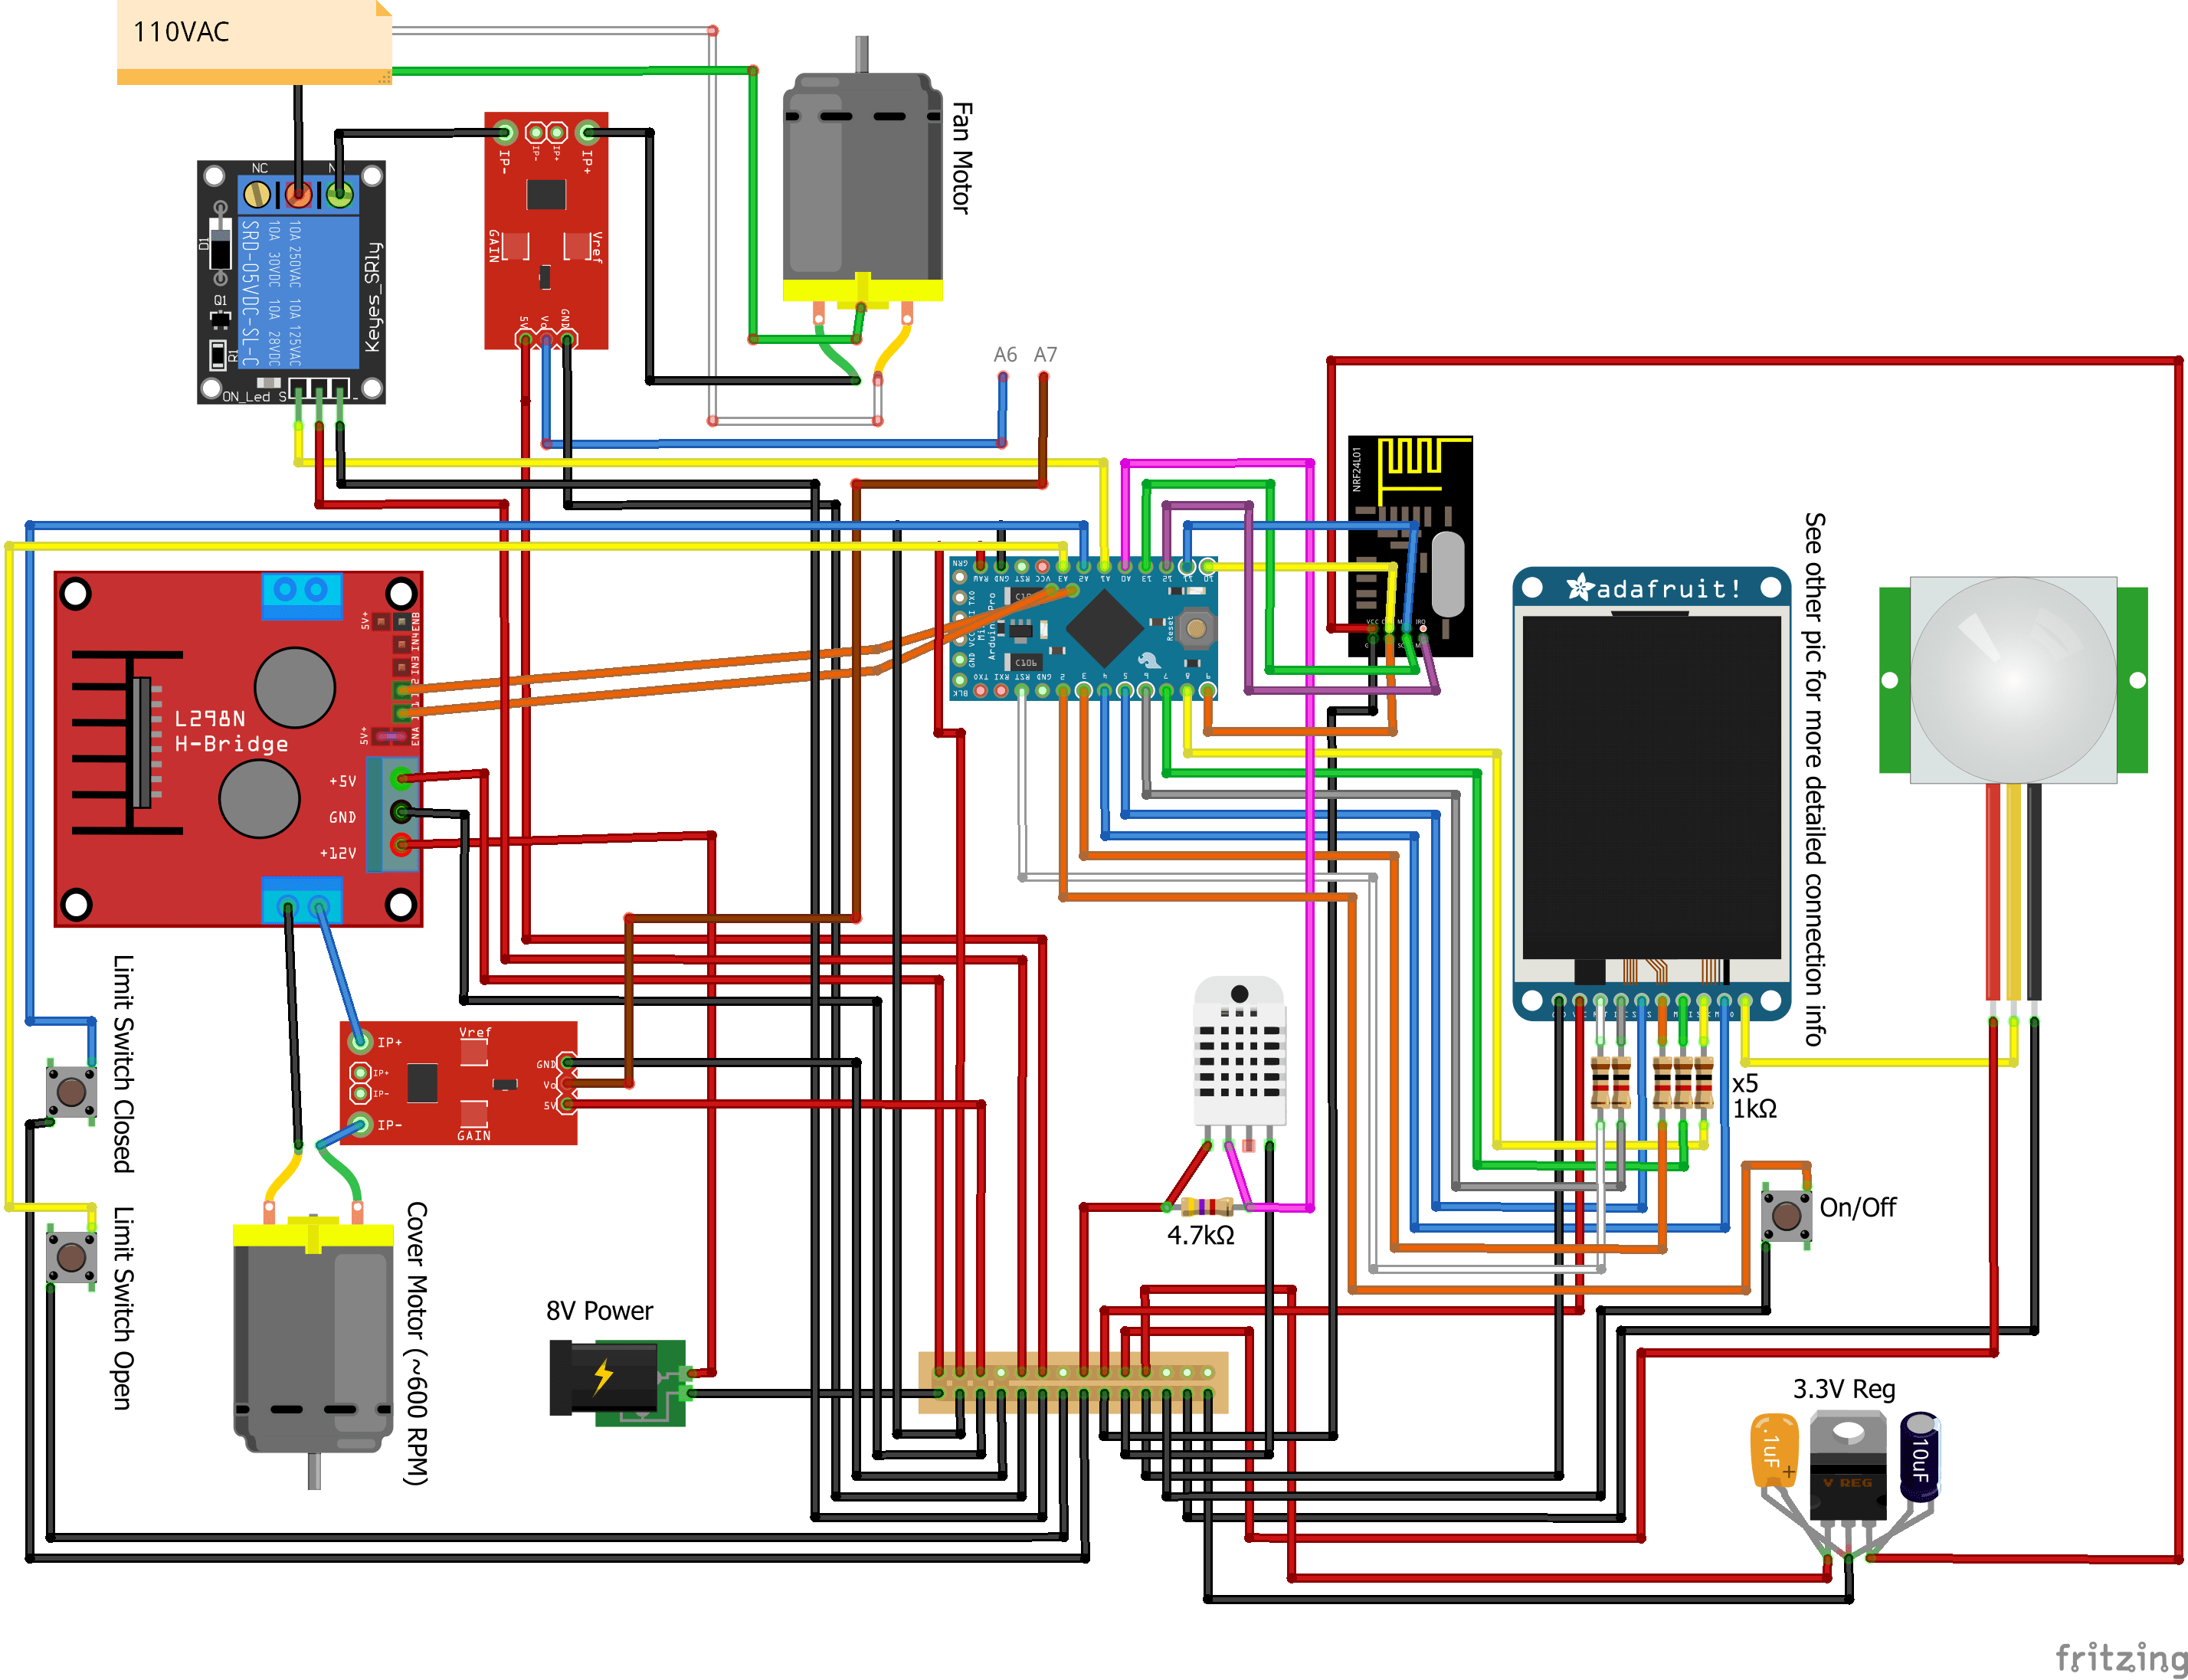 Fritzing Whole House Fan Wiring?resize\\\\\\\\\\\\\\\\\\\\\\\\\\\\\\\\\\\\\\\\\\\\\\\=665%2C511\\\\\\\\\\\\\\\\\\\\\\\\\\\\\\\\\\\\\\\\\\\\\\\&ssl\\\\\\\\\\\\\\\\\\\\\\\\\\\\\\\\\\\\\\\\\\\\\\\=1 clayton 1600g wood furnace wiring diagrams wiring diagrams clayton wood furnace wiring diagram at edmiracle.co